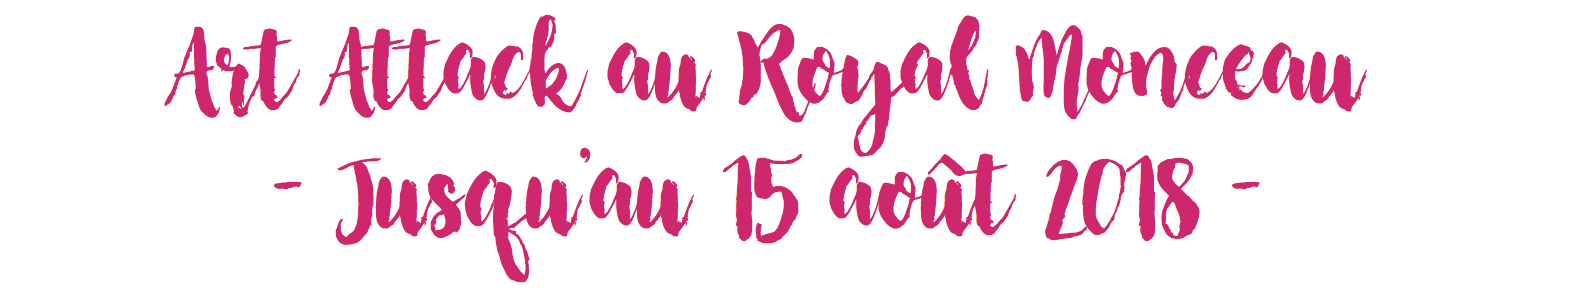 Art-attack-royal-monceau-newsletter-culturclub.png